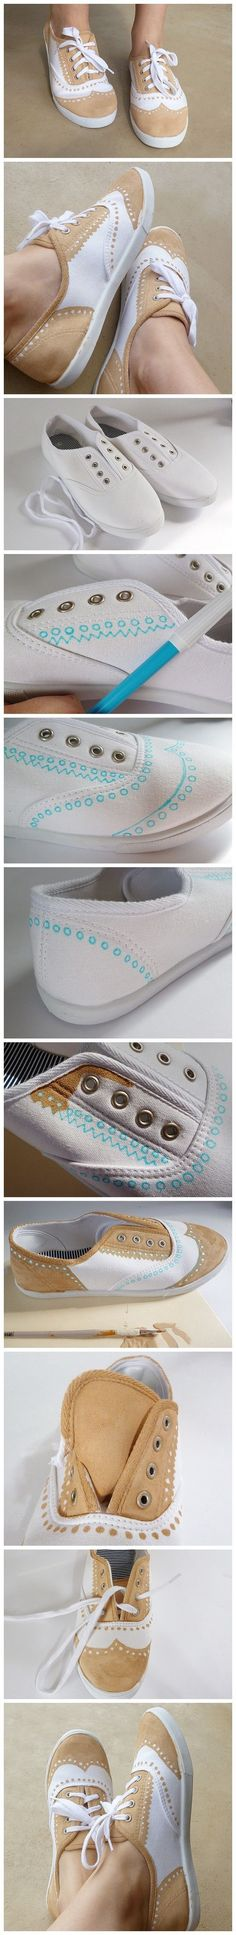 New shoe with own desing- love this!